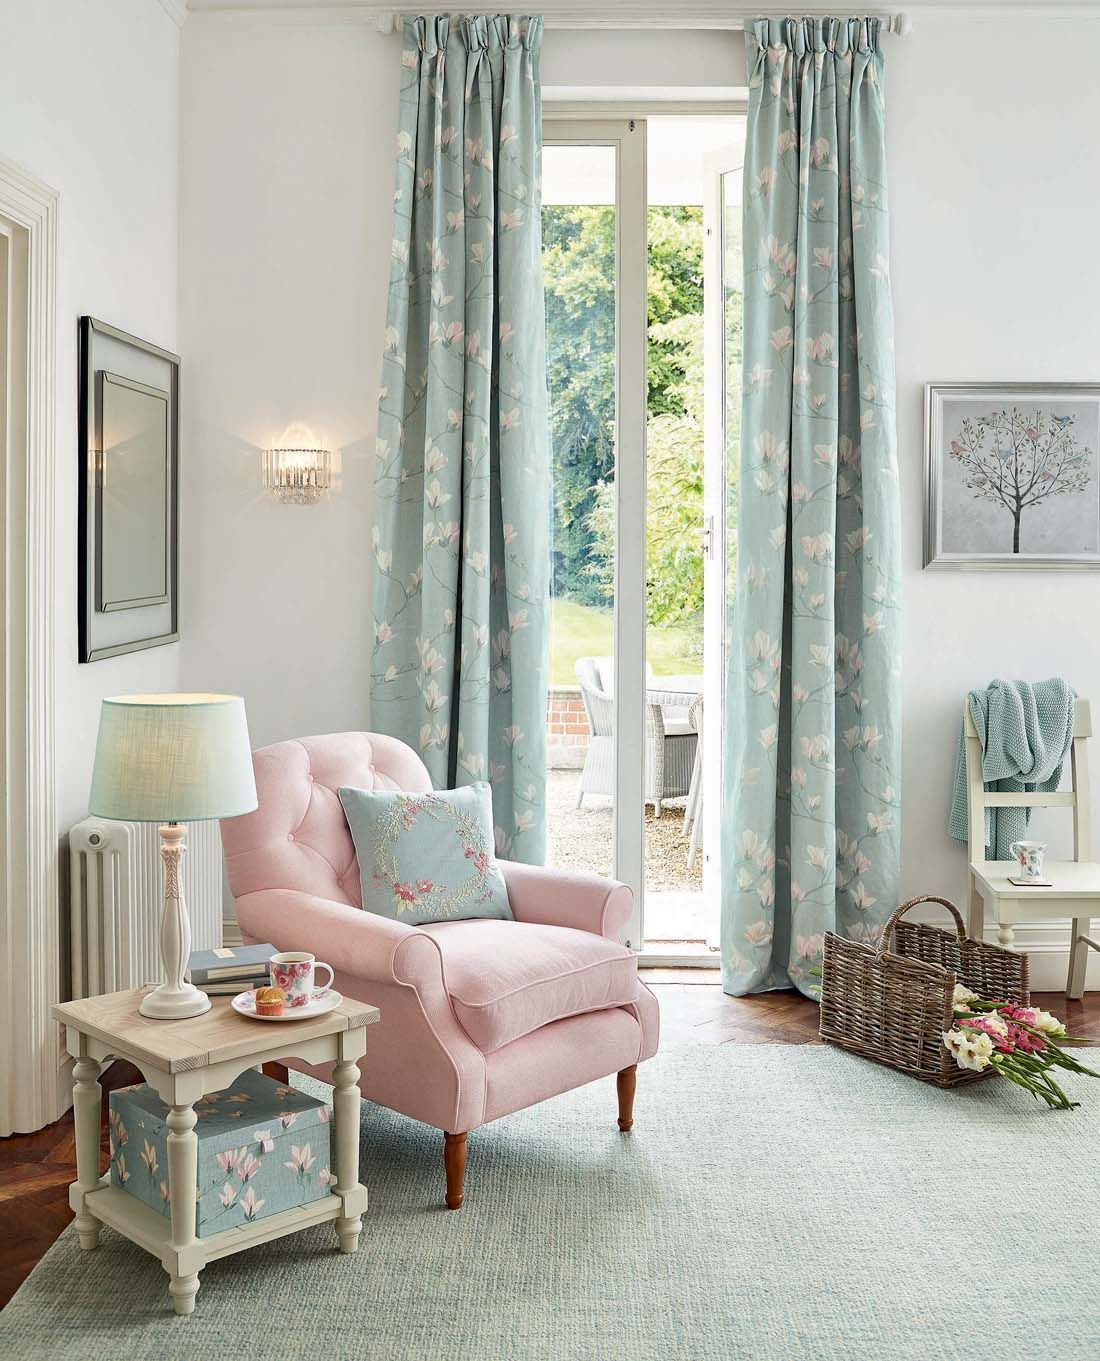 laura ashley for the home in 2019 home, home decor accessories